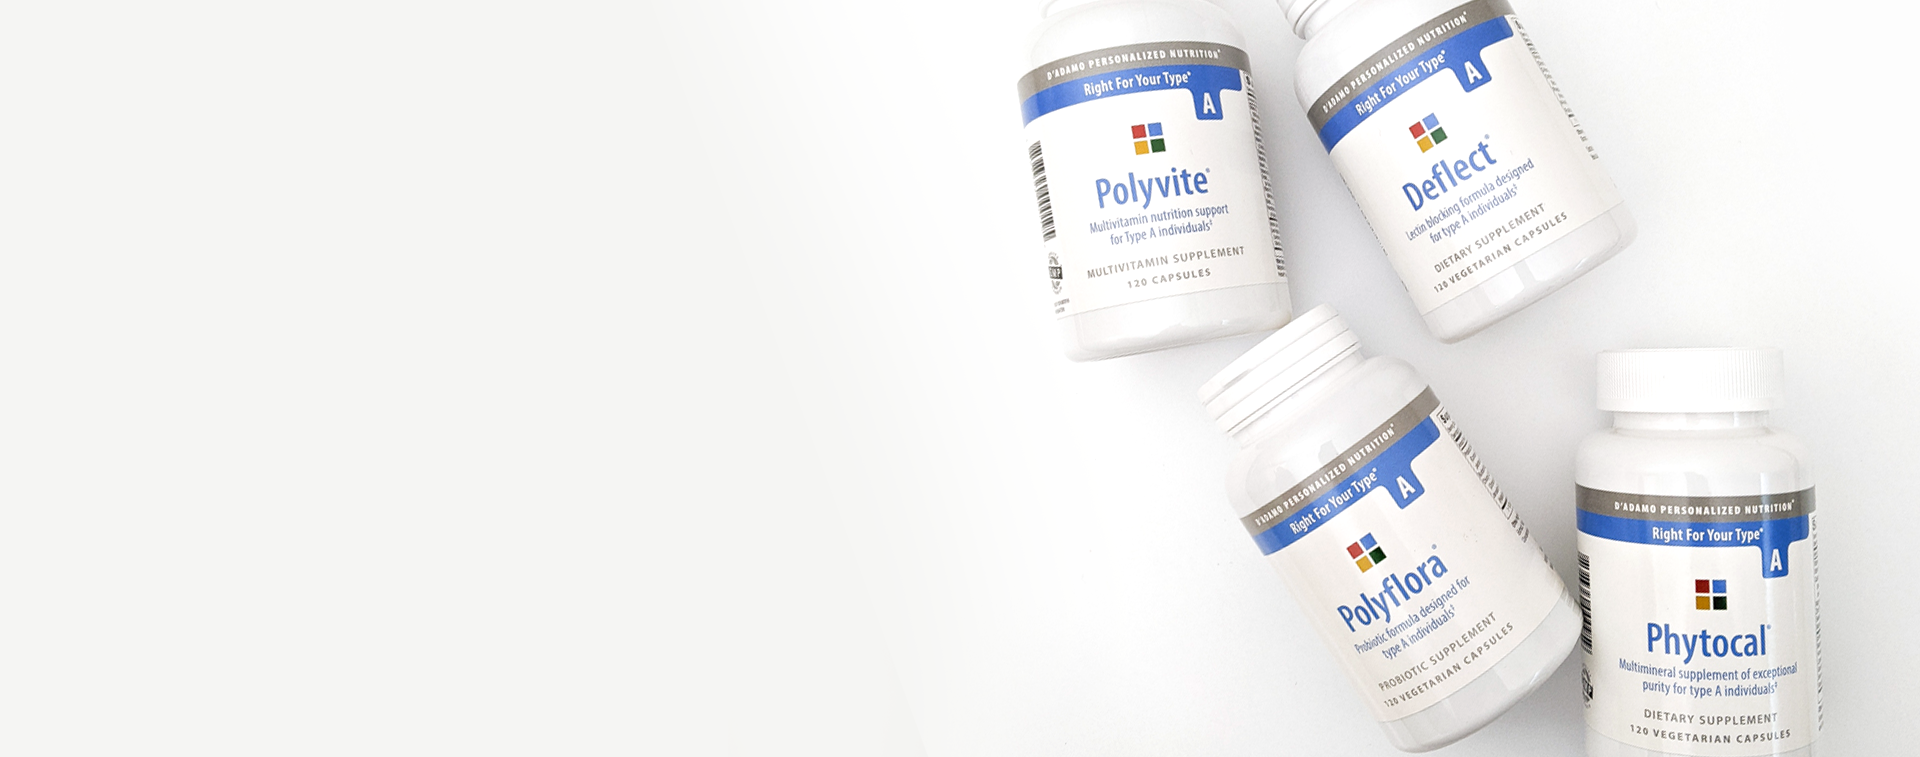 Personalized Daily Supplements